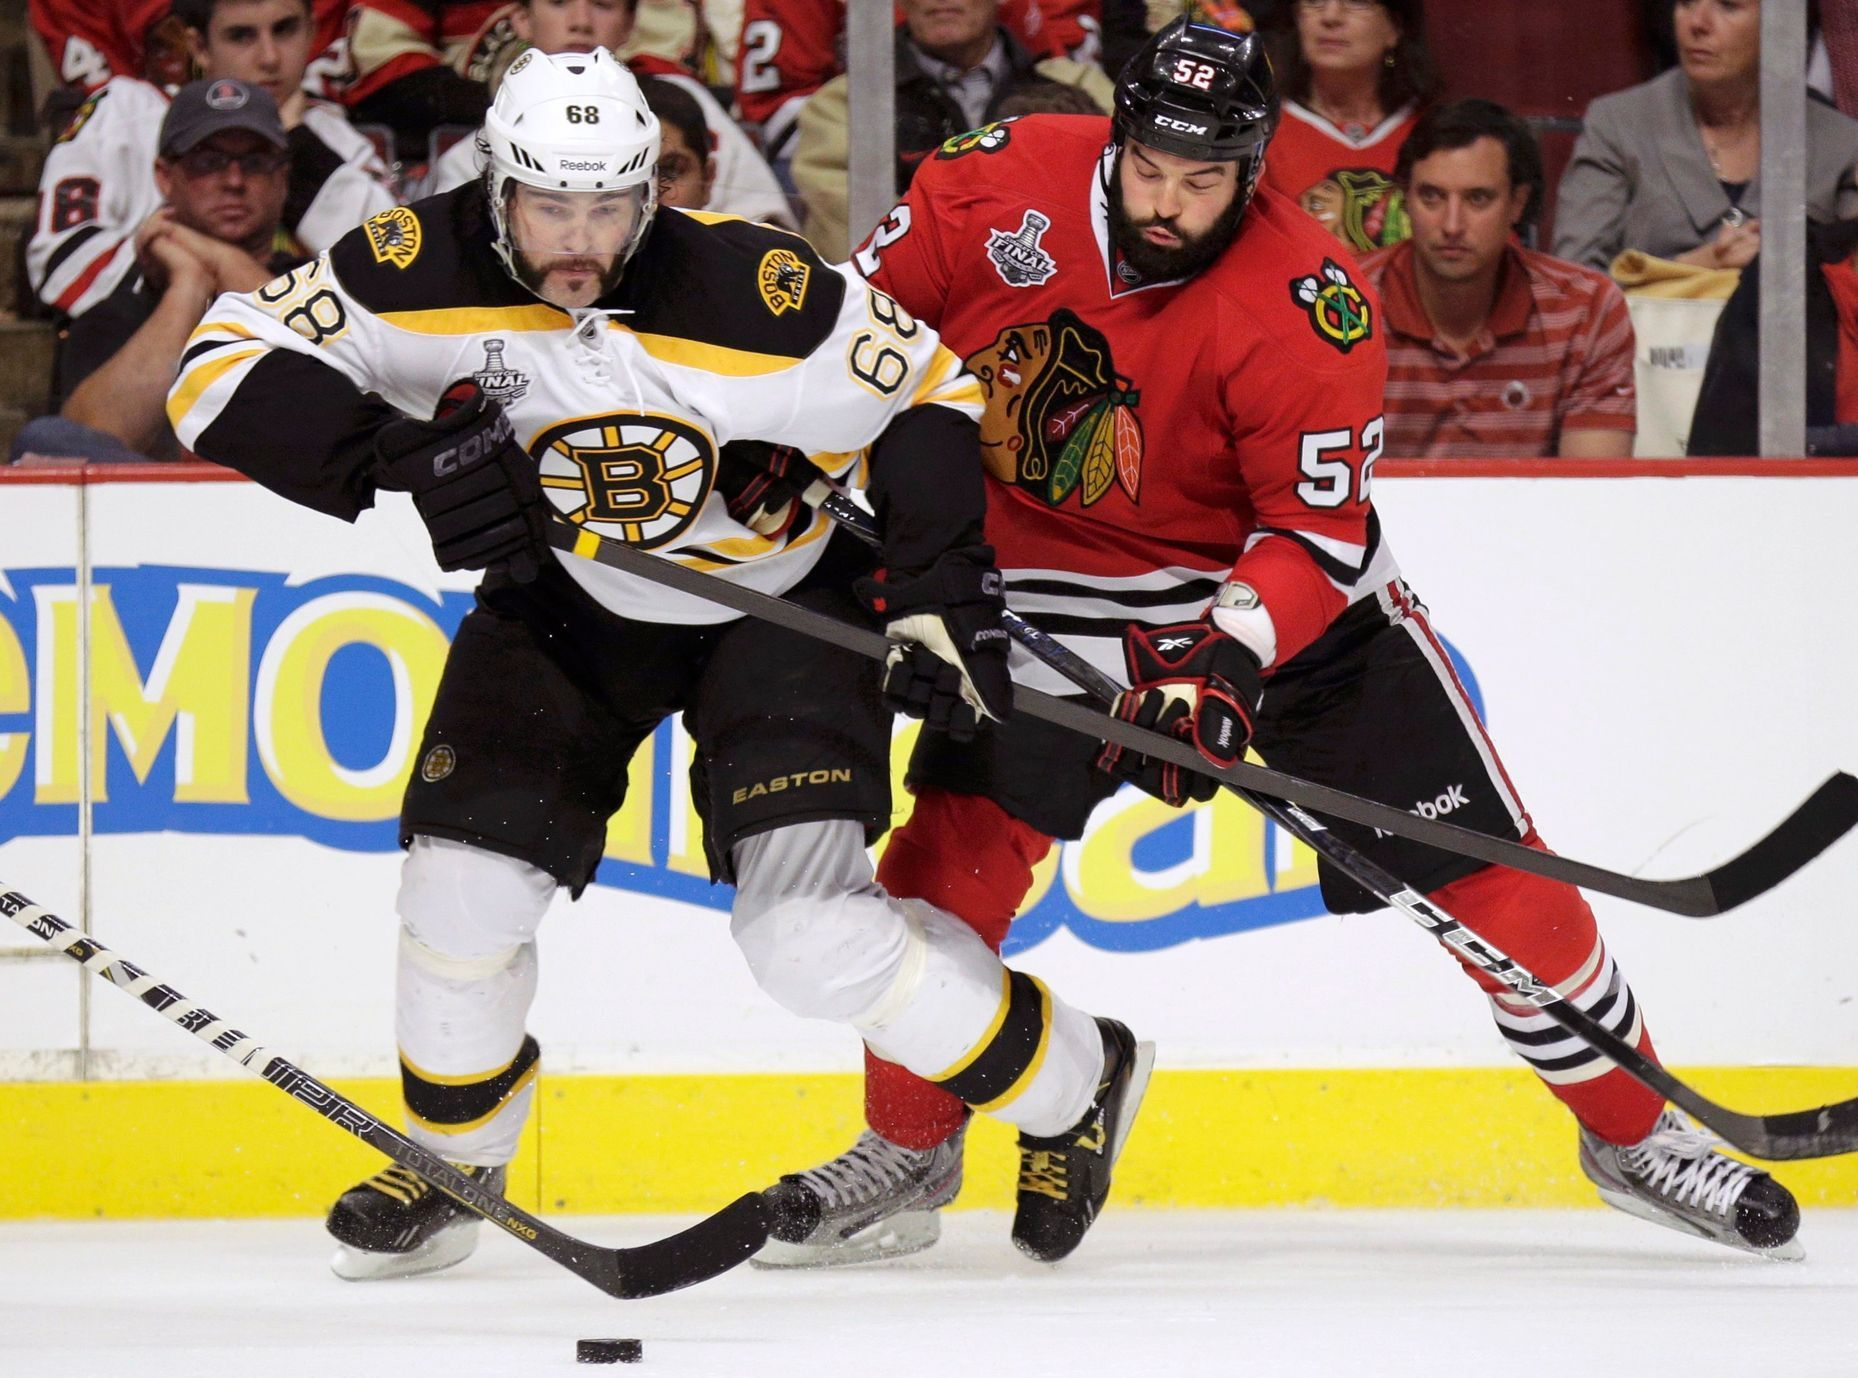 Bruins' Jagr is checked by Blackhawks' Bollig in double-over